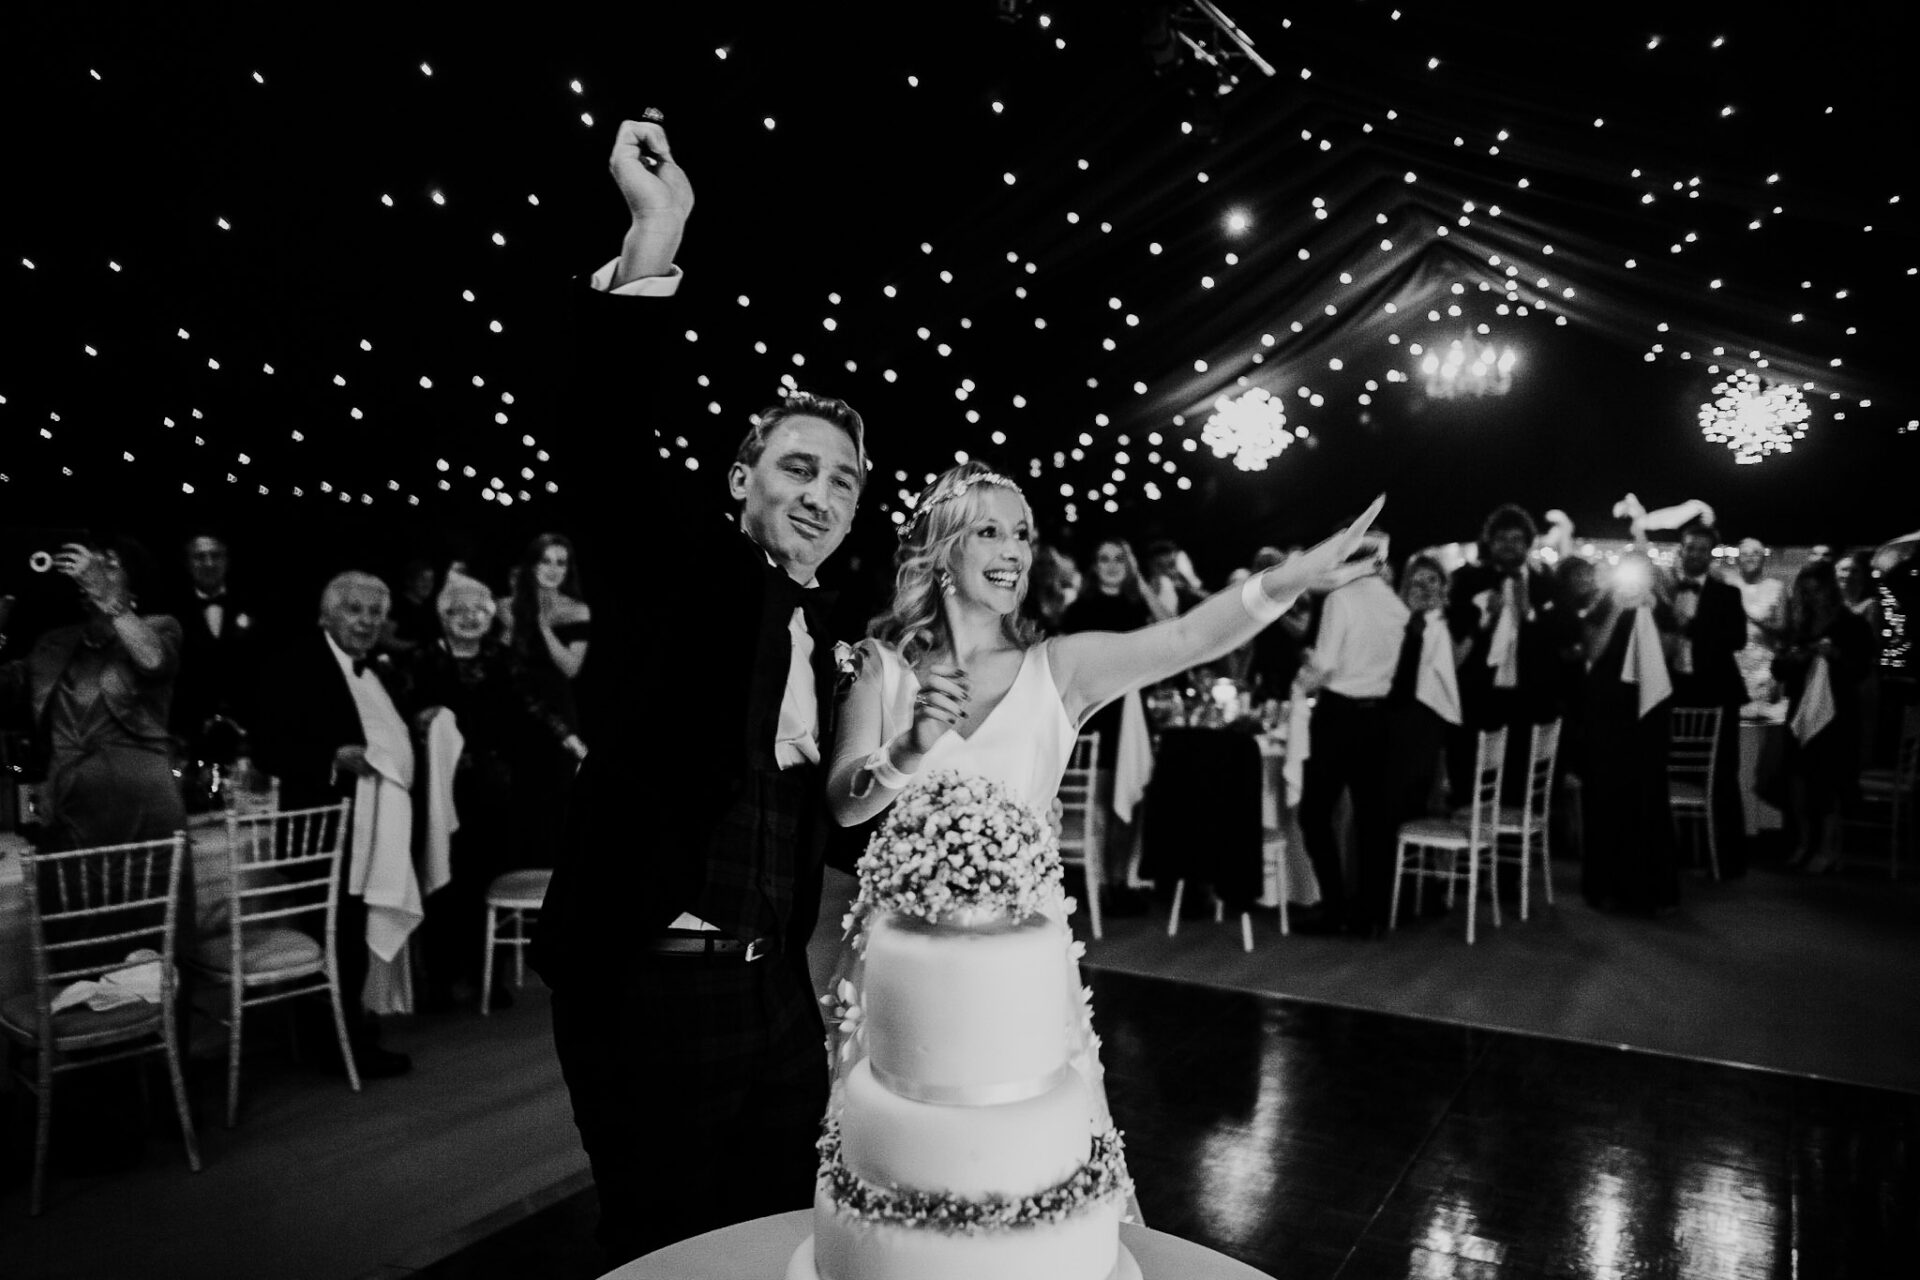 bride and groom cutting the cake photography